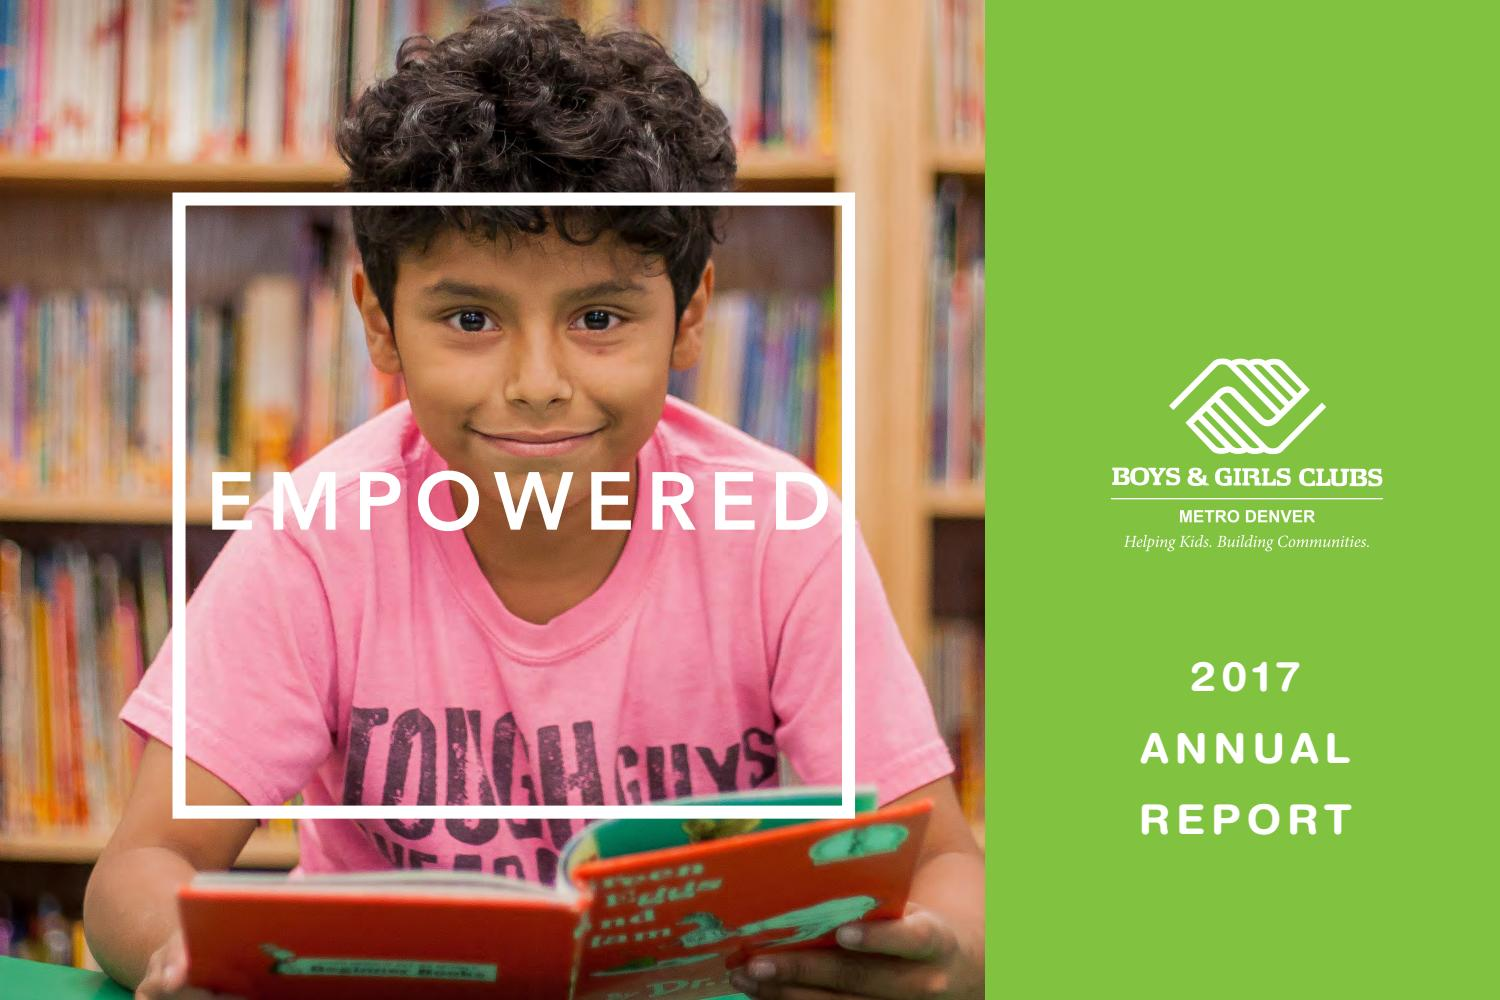 BGCMD 2017 Annual Report by Boys & Girls Clubs of Metro